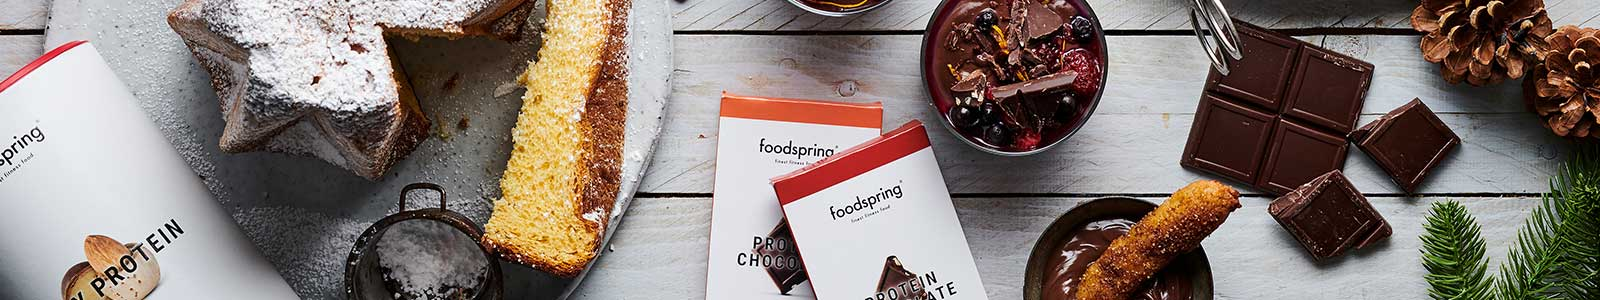 foodspring winter edition